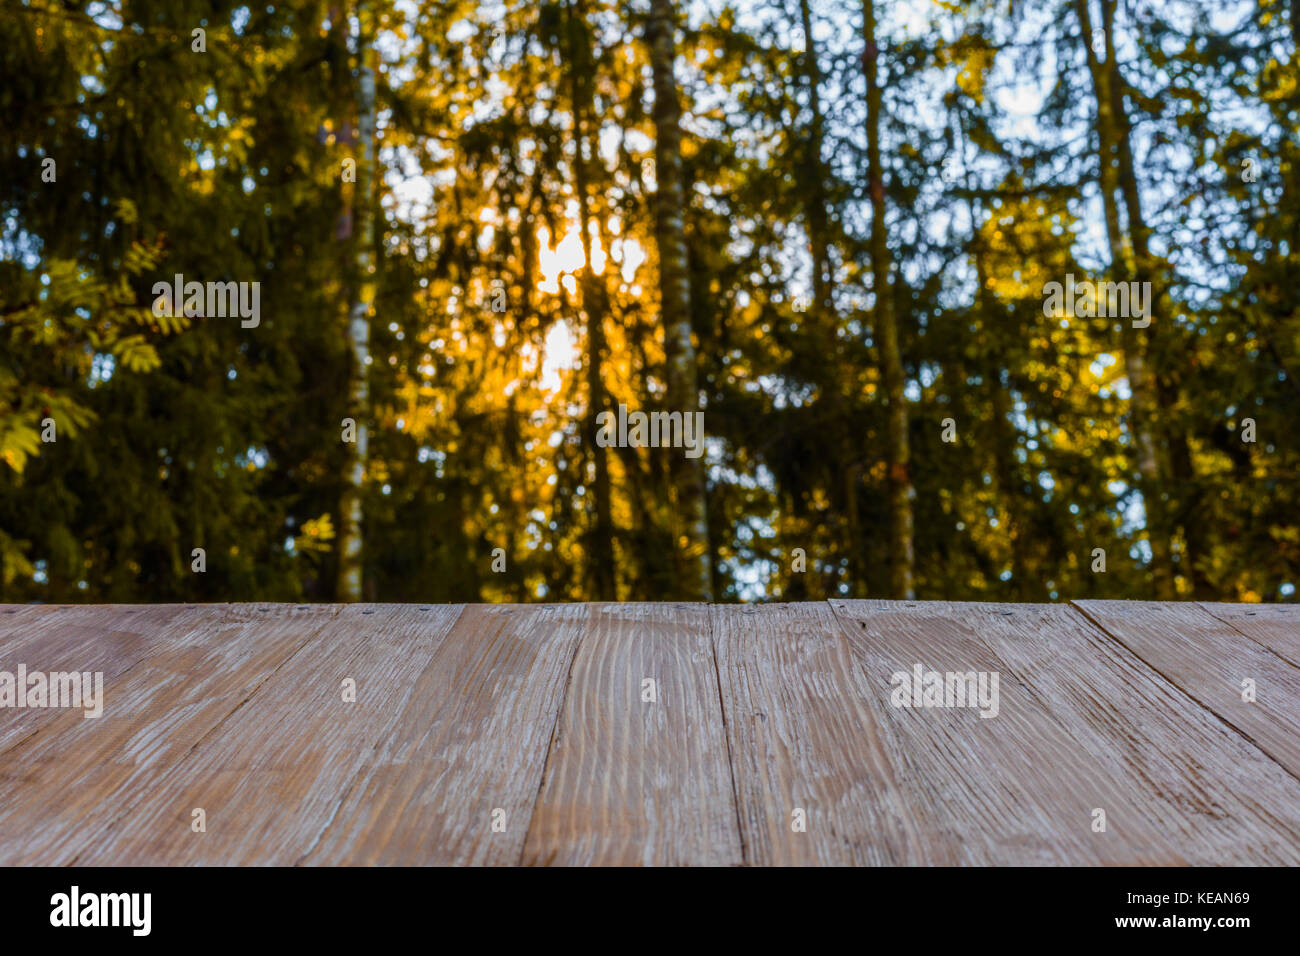 Empty Rustic Wood Table Top On Blurred Forest Background And Penetrating Sun Rays At Summer Can Montage Or Display Your Products